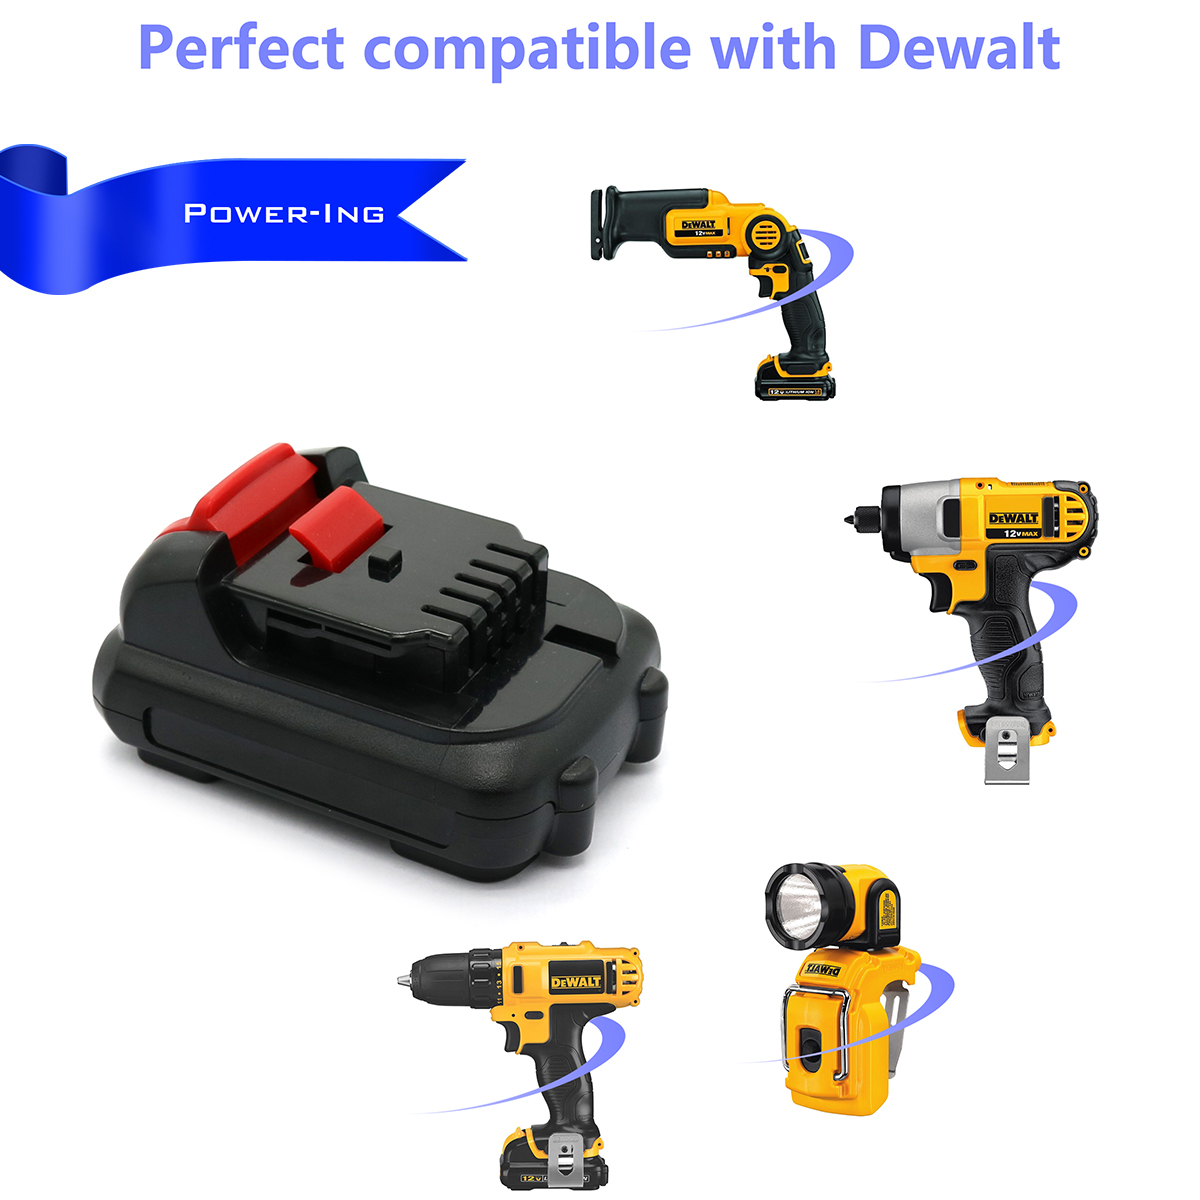 Power-ing For DCB120 Battery Dewalt,Upgraded 2.5Ah Dewalt 10.8v Battery 12V Max Lithium-Ion Battery Compatible with DeWalt DCB121 DCB127 DCB127-2, Dewalt 12 volt Li-ion Battery